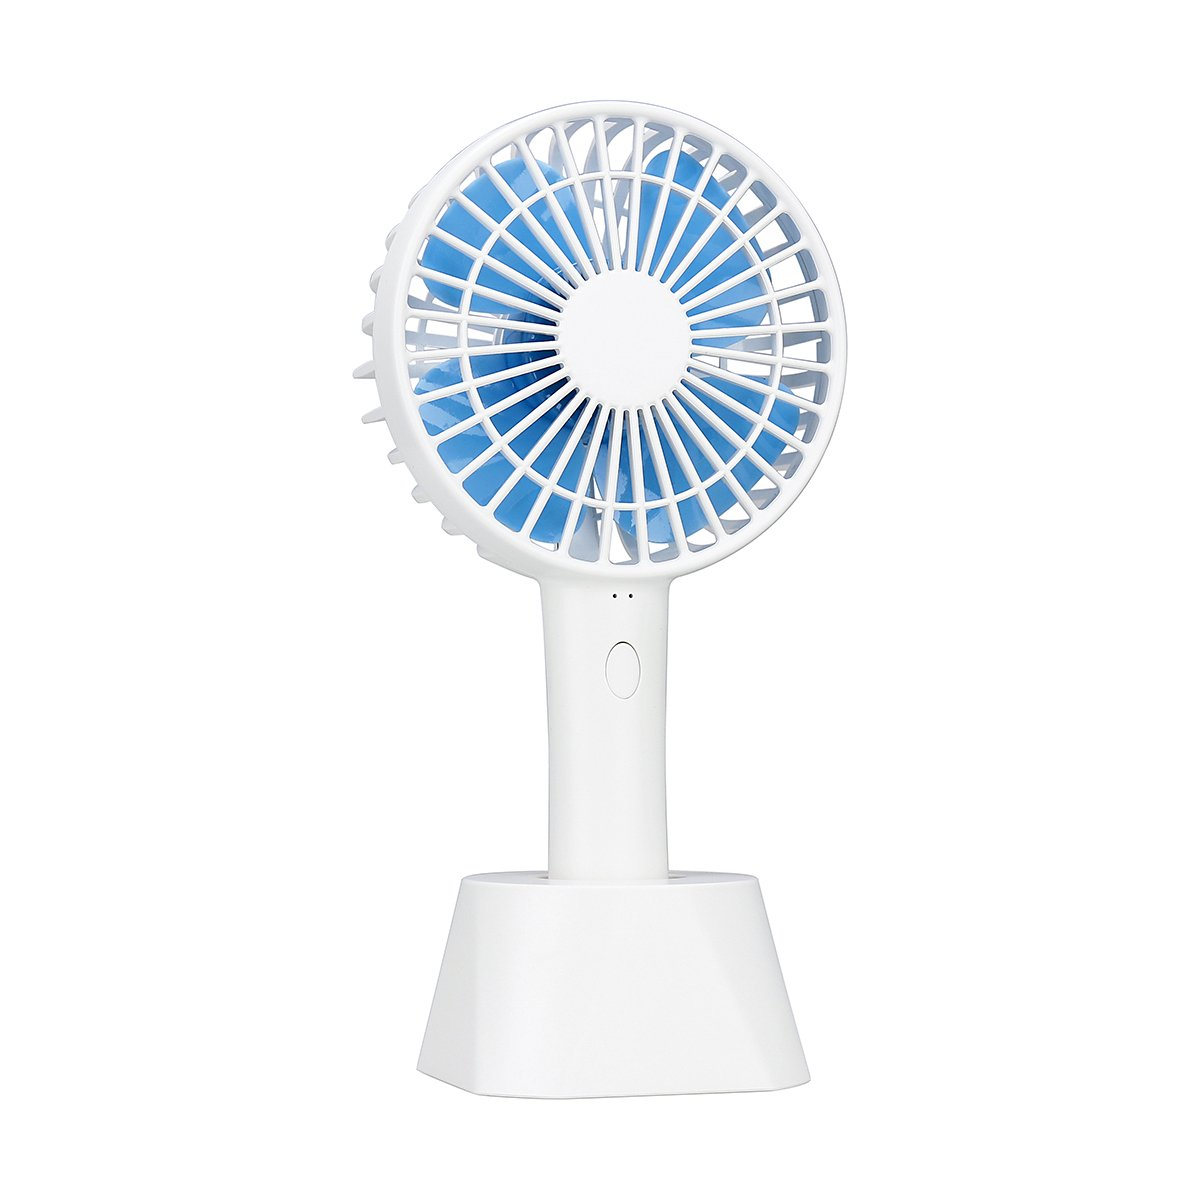 Handheld Fan - USB Fan Mini Fan Outdoor Fan - Adjustable 3 Speeds Foldable Handheld Personal Fan